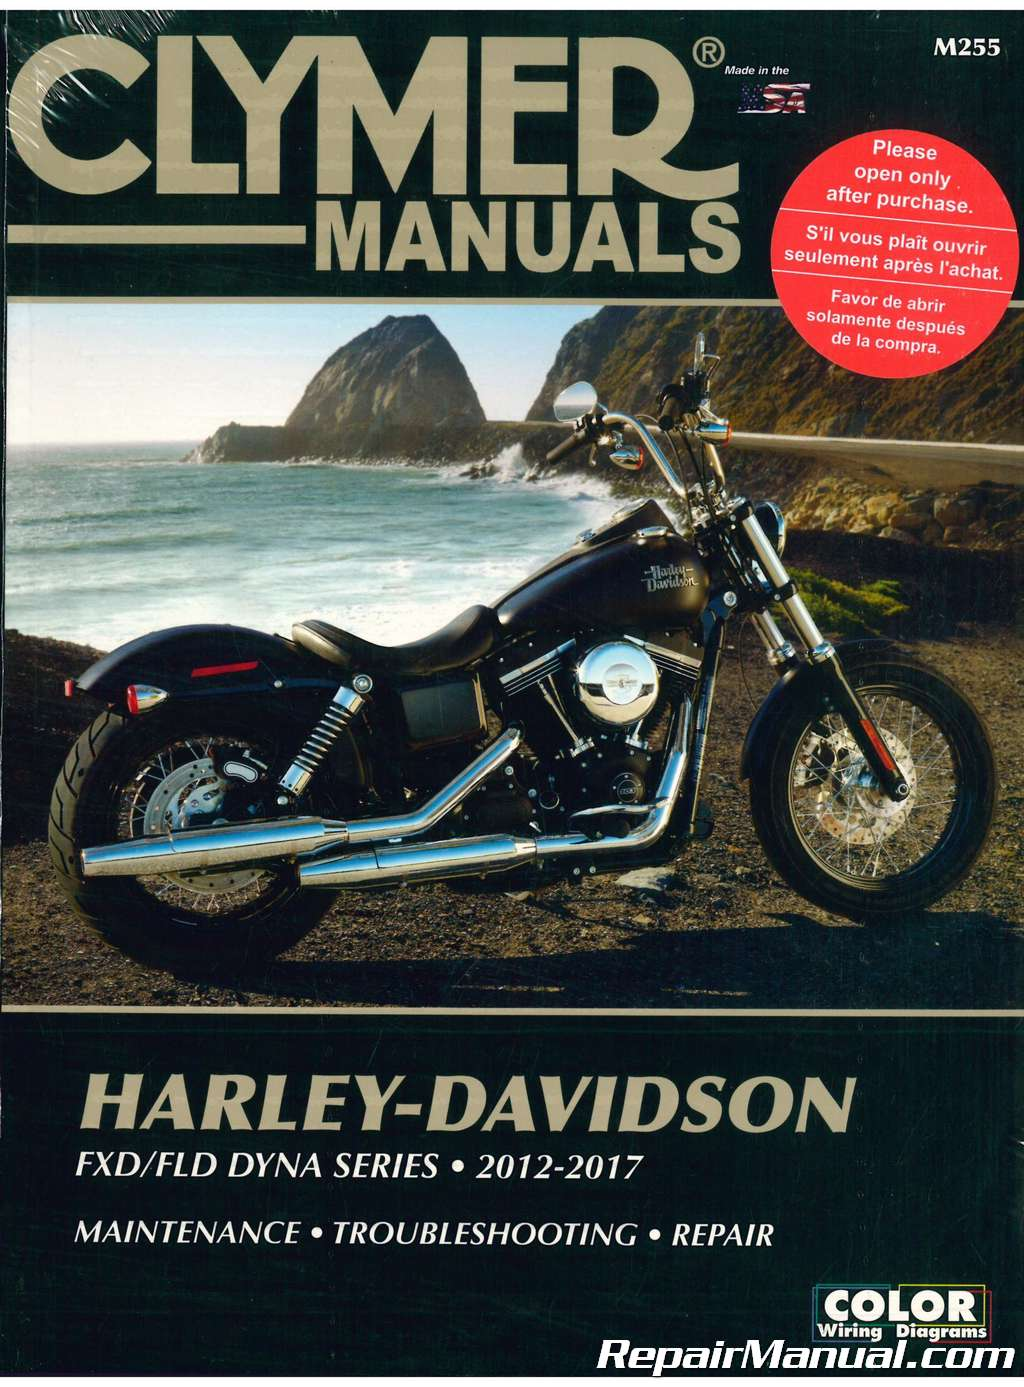 clymer harley davidson fxd fld dyna series 2012 2017 motorcycle rh repairmanual com Harley-Davidson Owners Manual PDF harley davidson motorcycle repair manual free